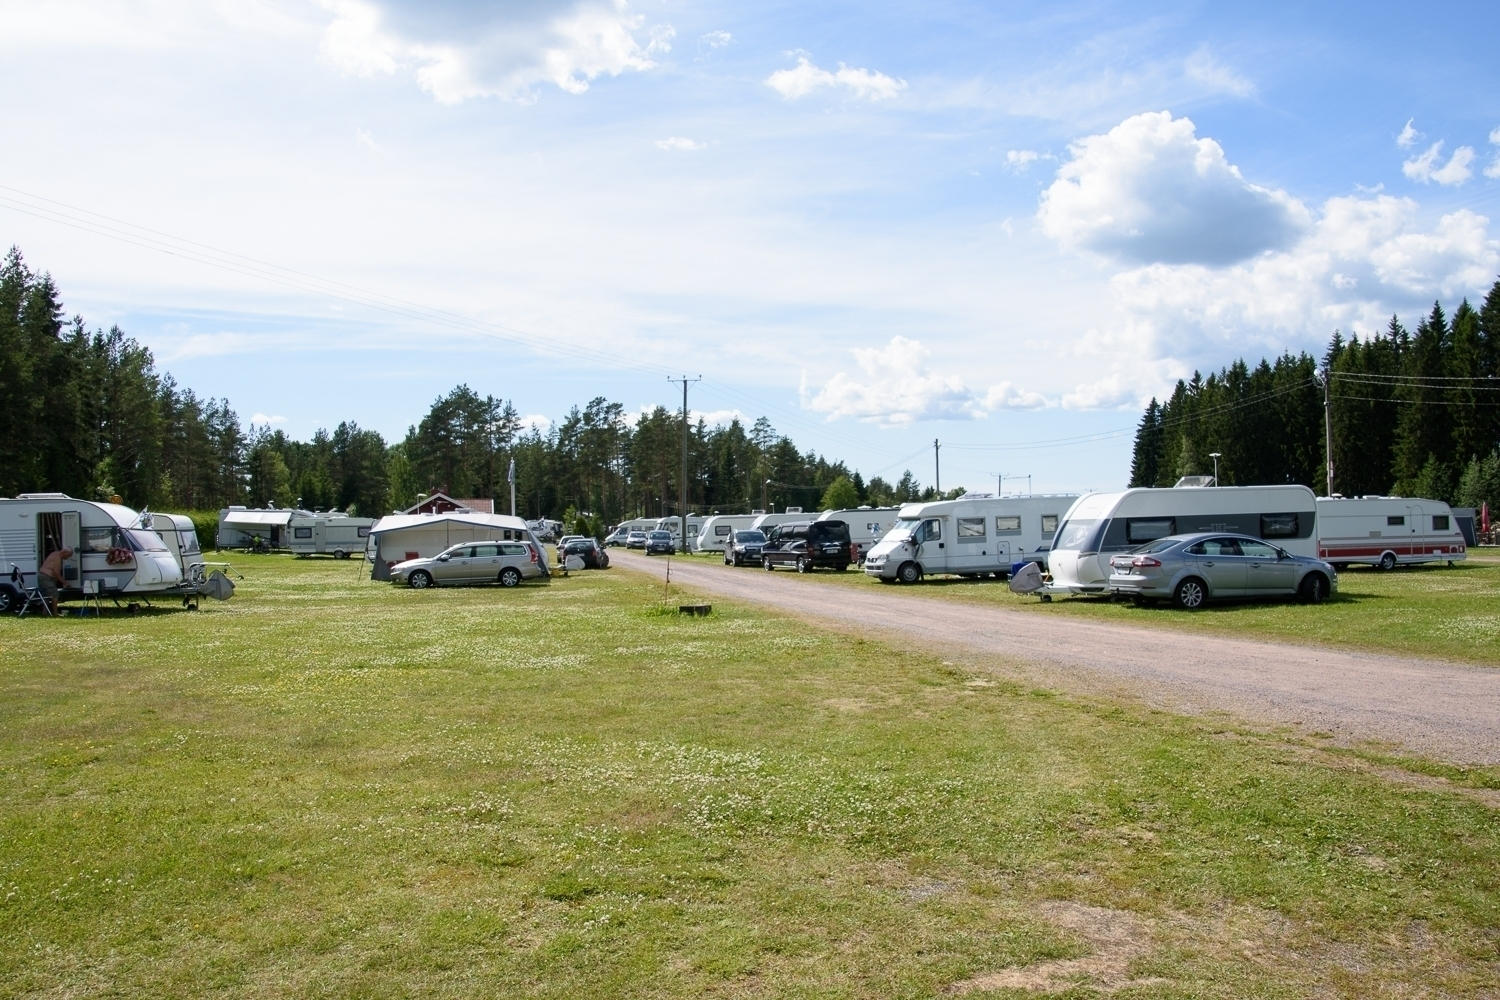 Row of caravans in Krapuranta